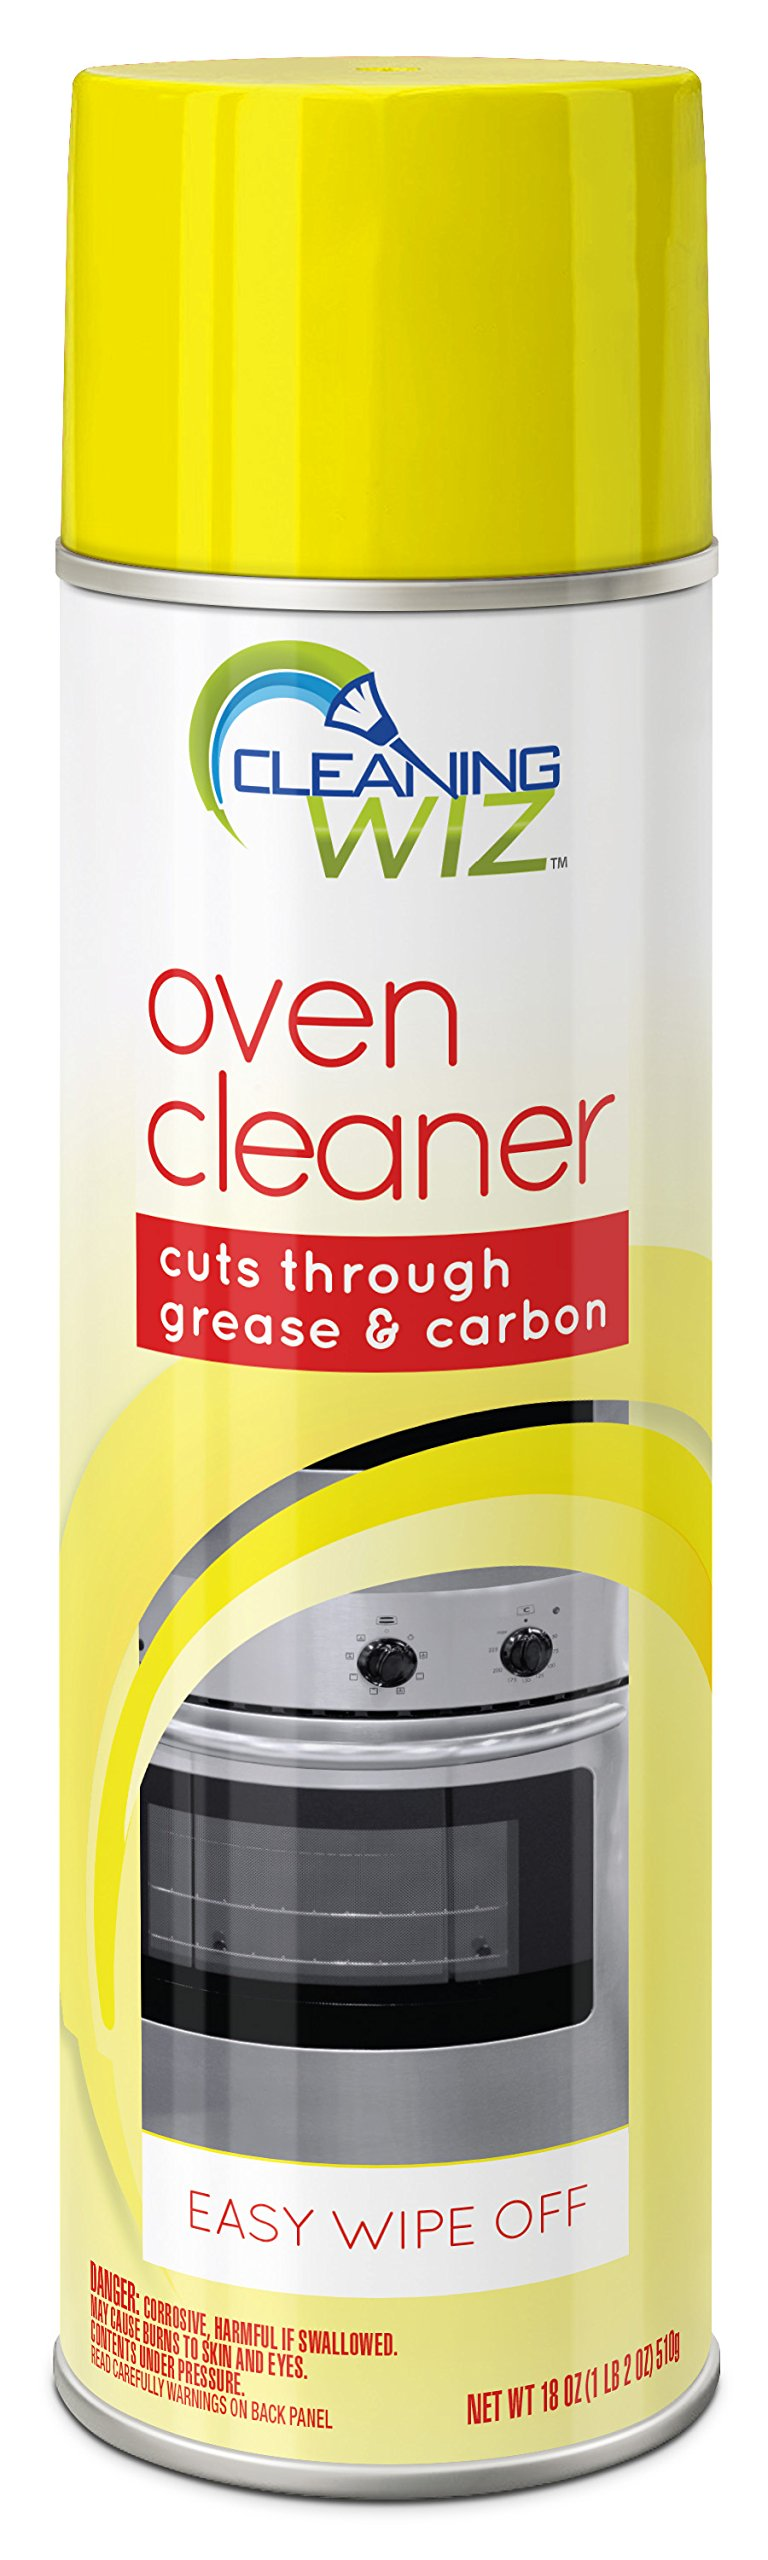 Cleaning Wiz Oven Cleaner, 18 Fluid Ounce (Pack of 4)